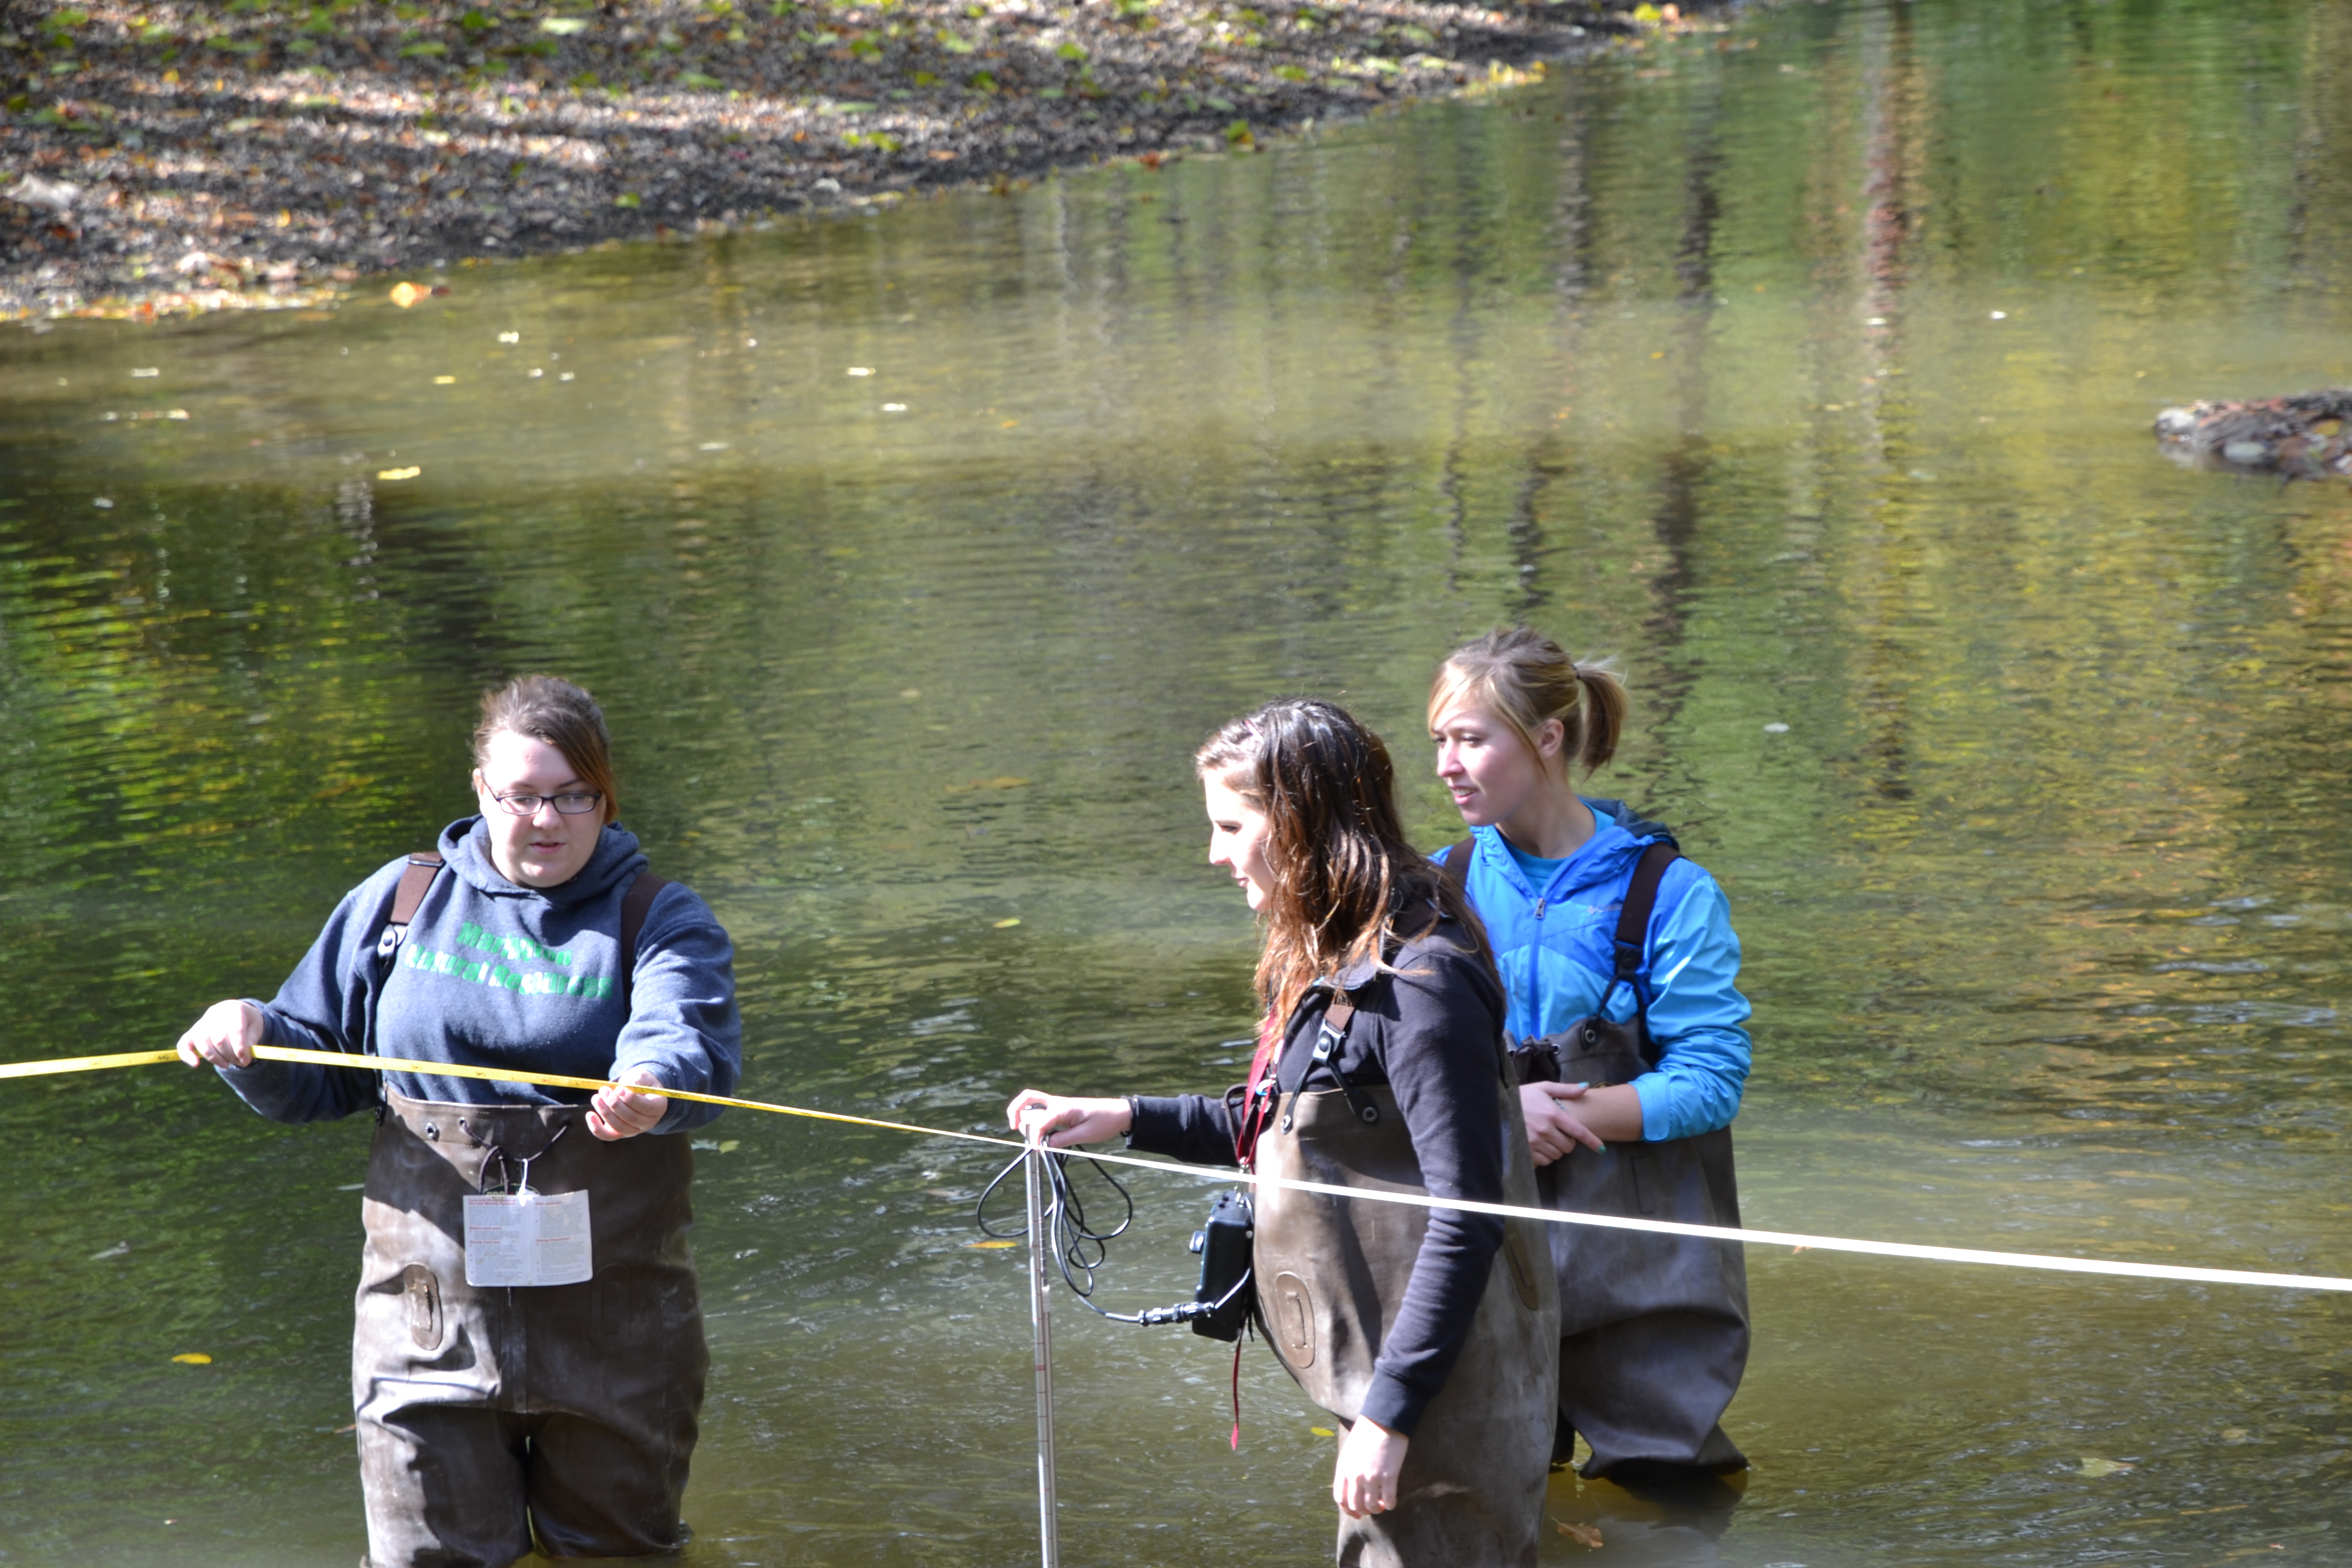 Enviro science students in the water